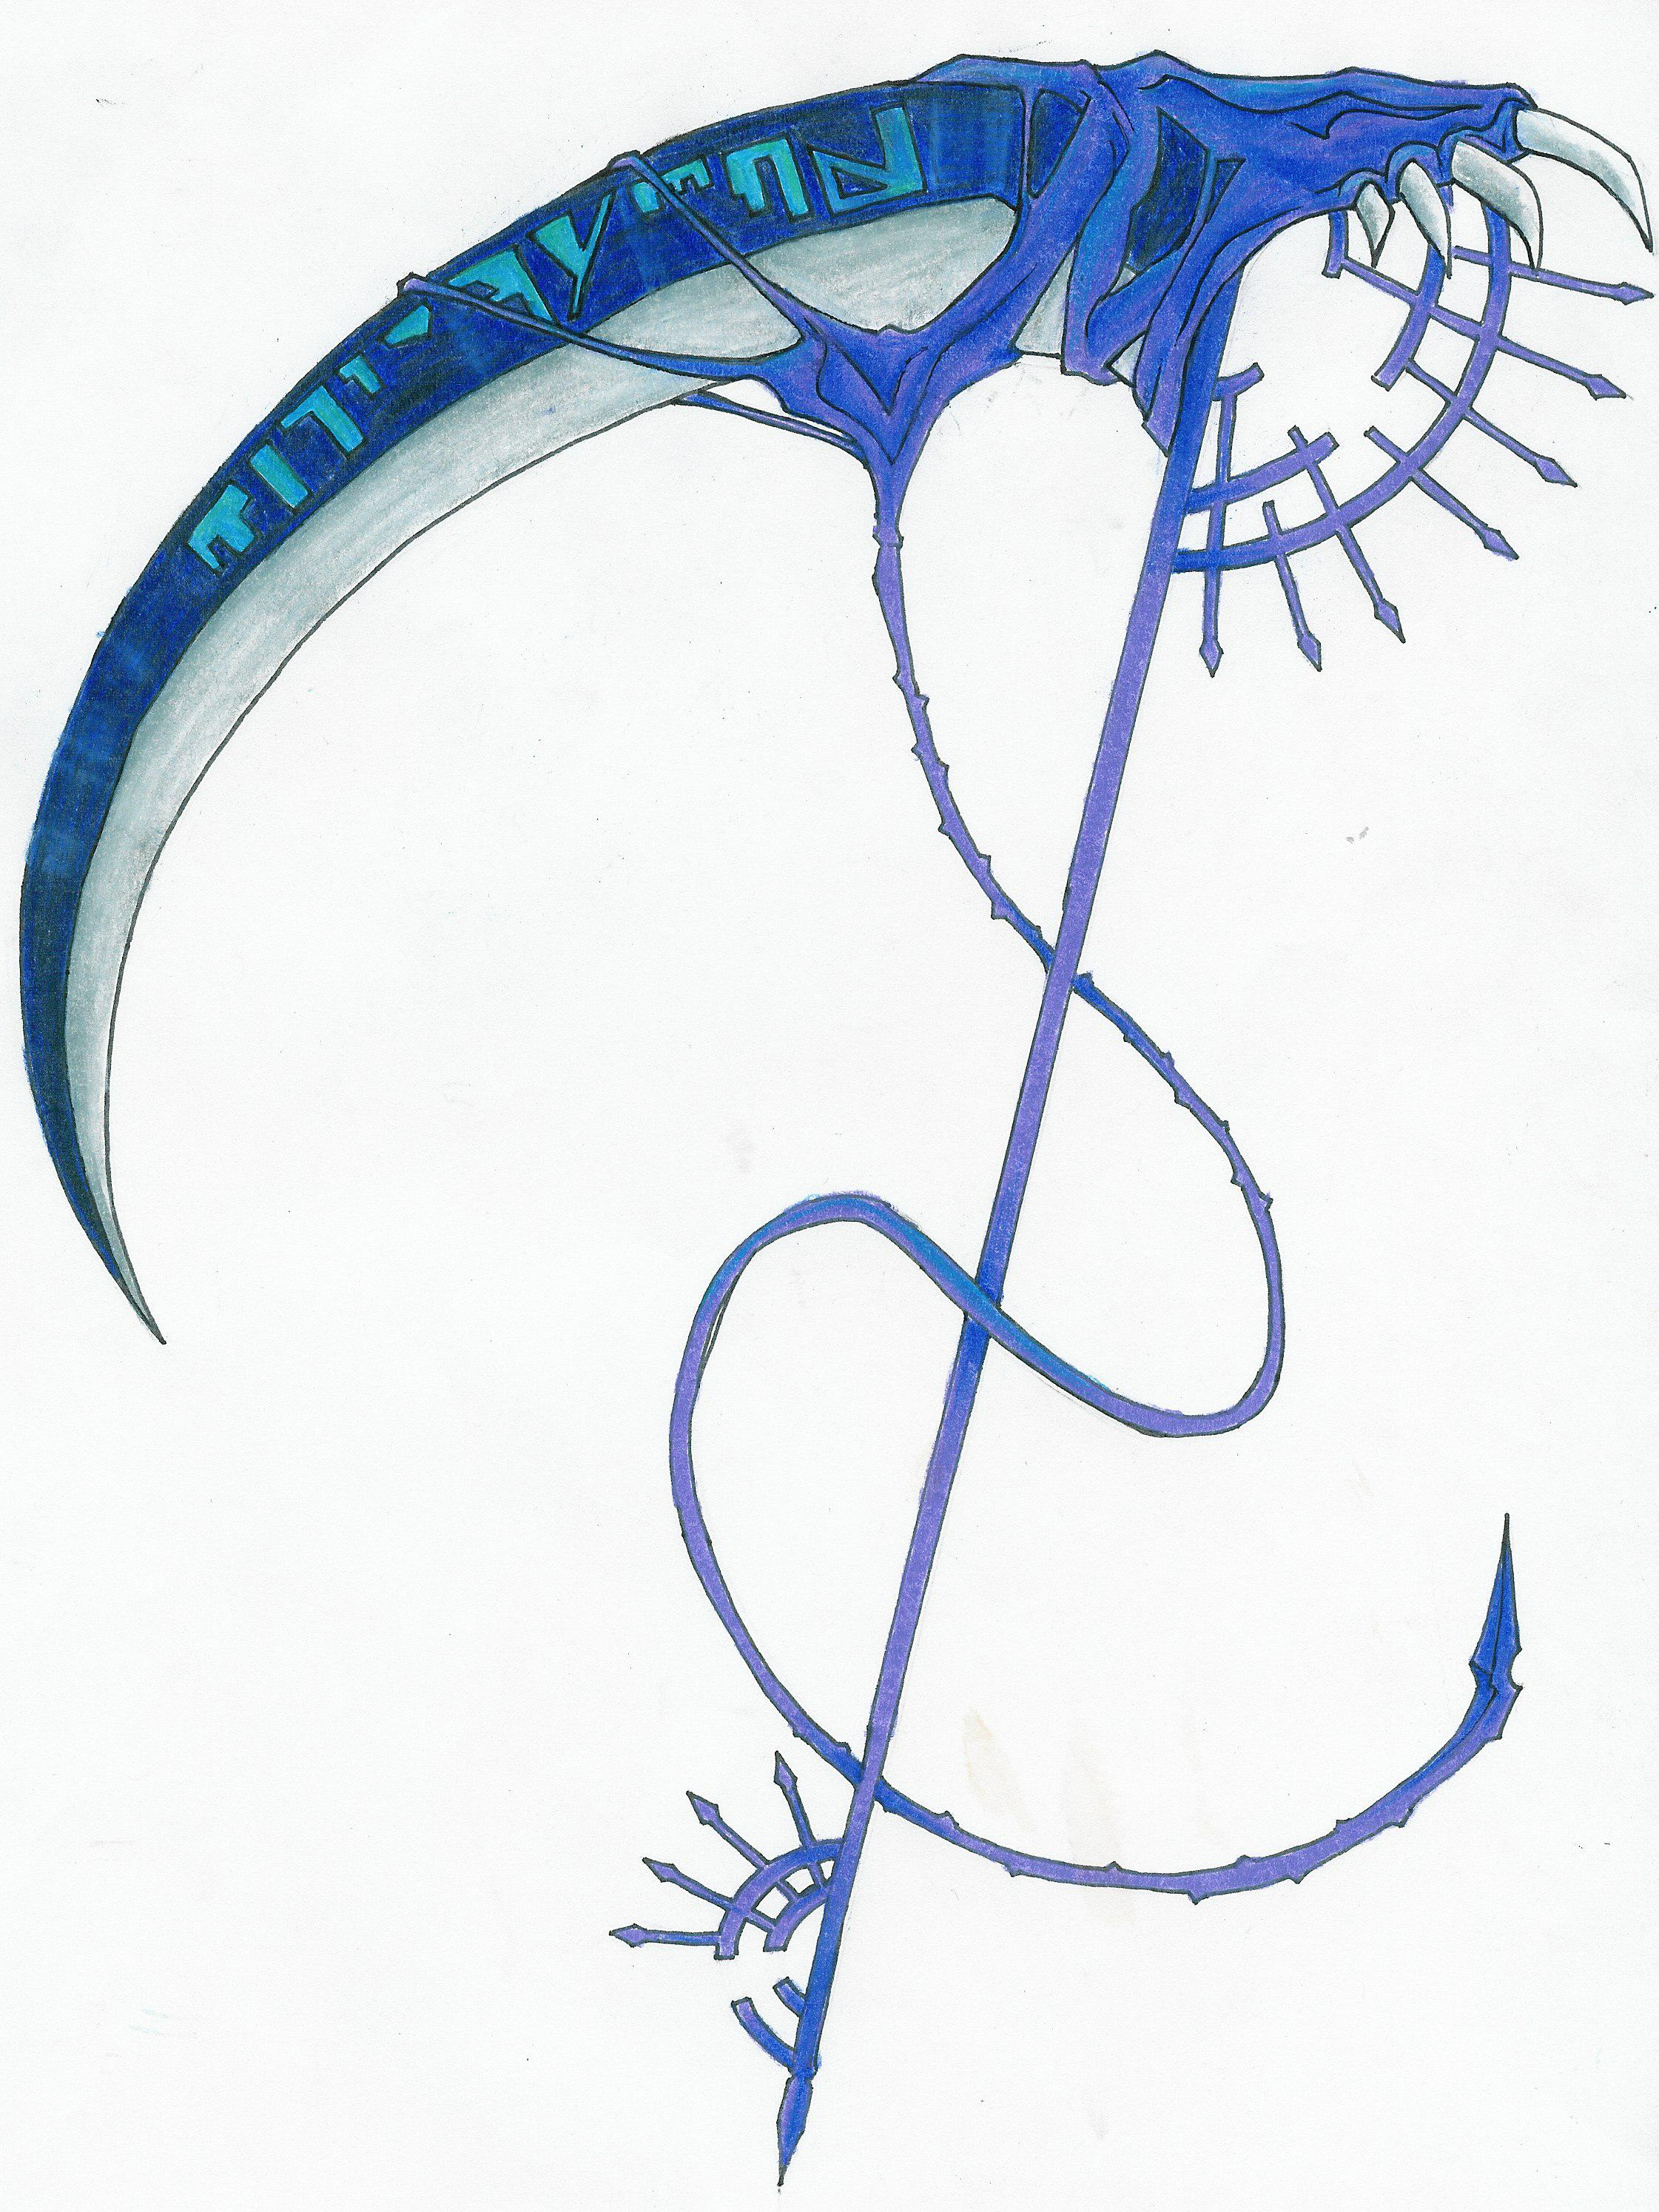 Drawn scythe headed [sign TRACES Weapon: thread] CHAOS